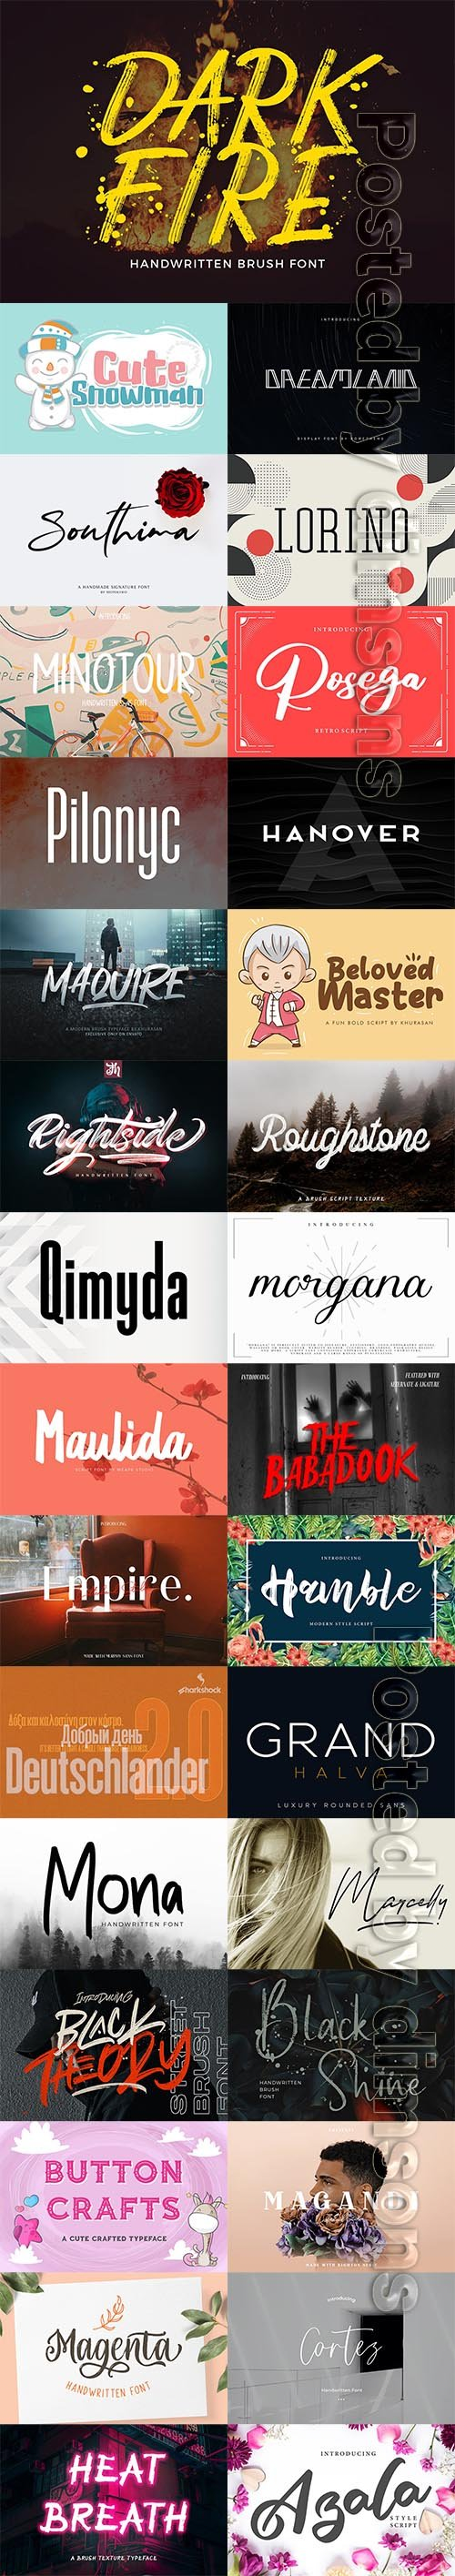 31 Fresh Font Bundle 2019 Vol 7